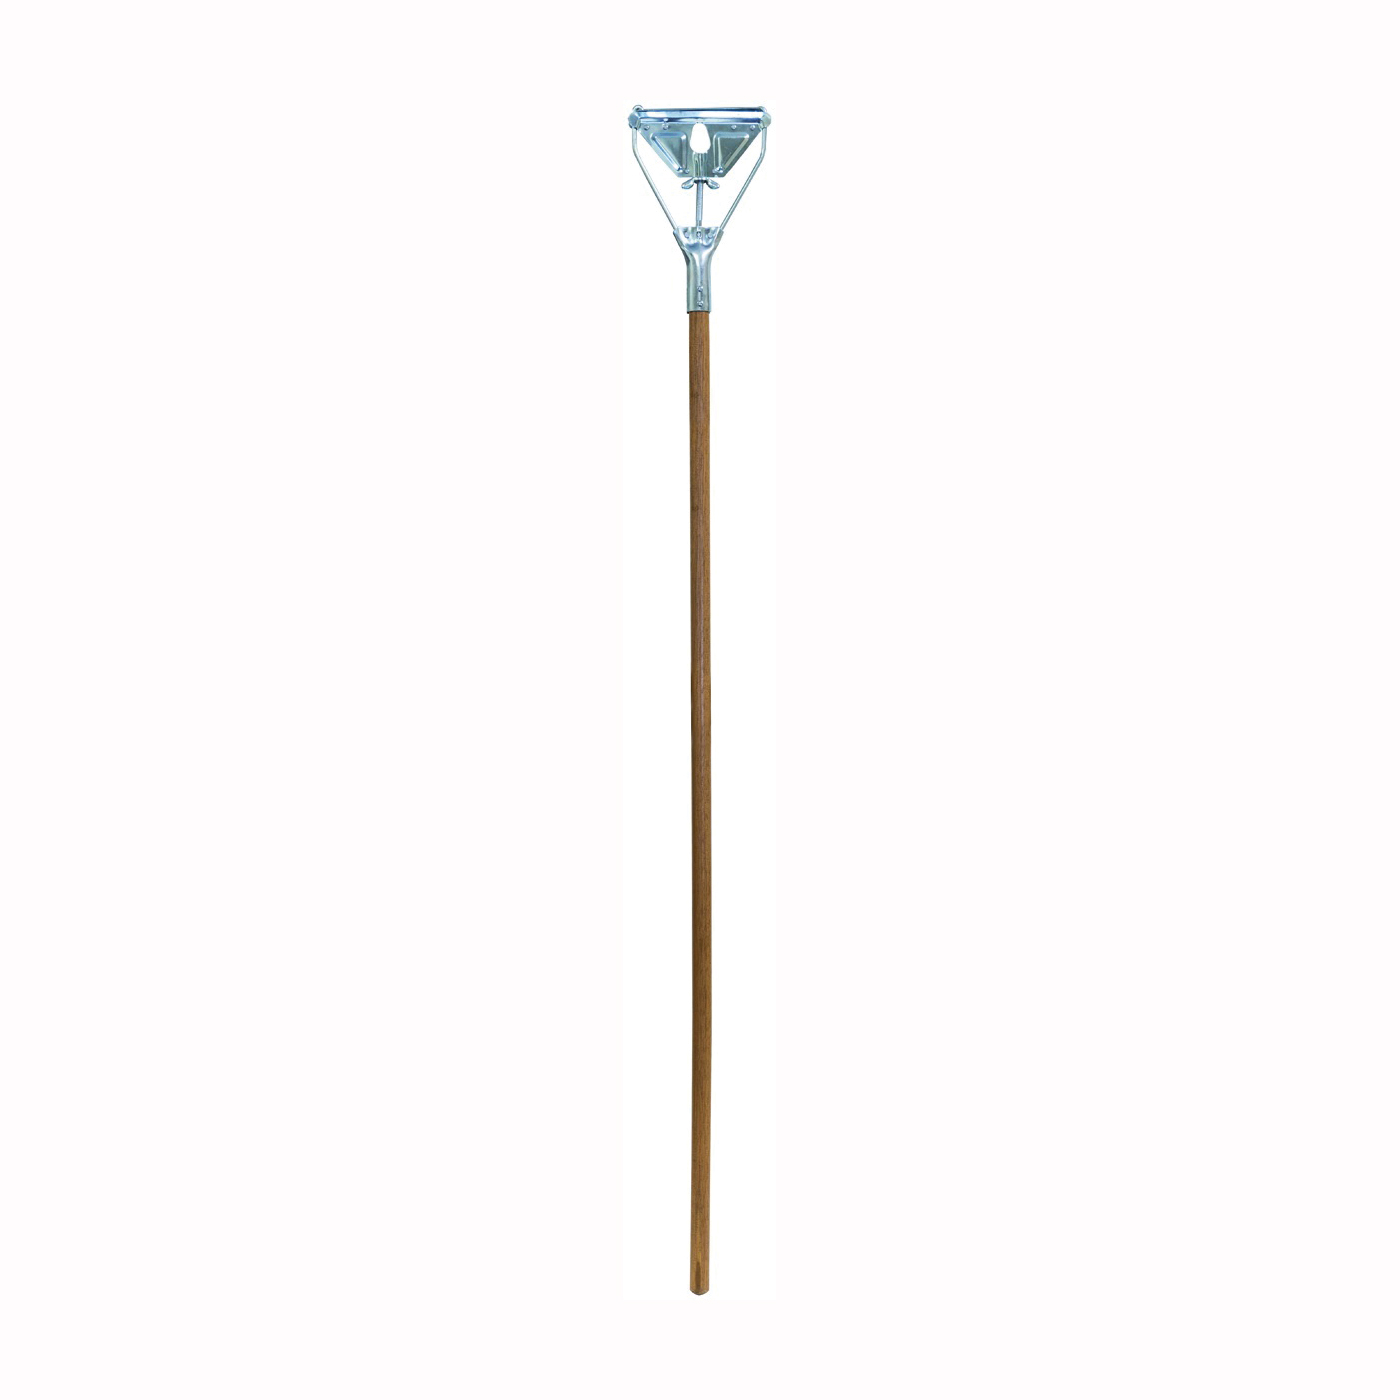 Picture of Quickie 038-391T-4 Wet Mop, Wing Nut Mop Connection, Cotton Mop Head, Hardwood Handle